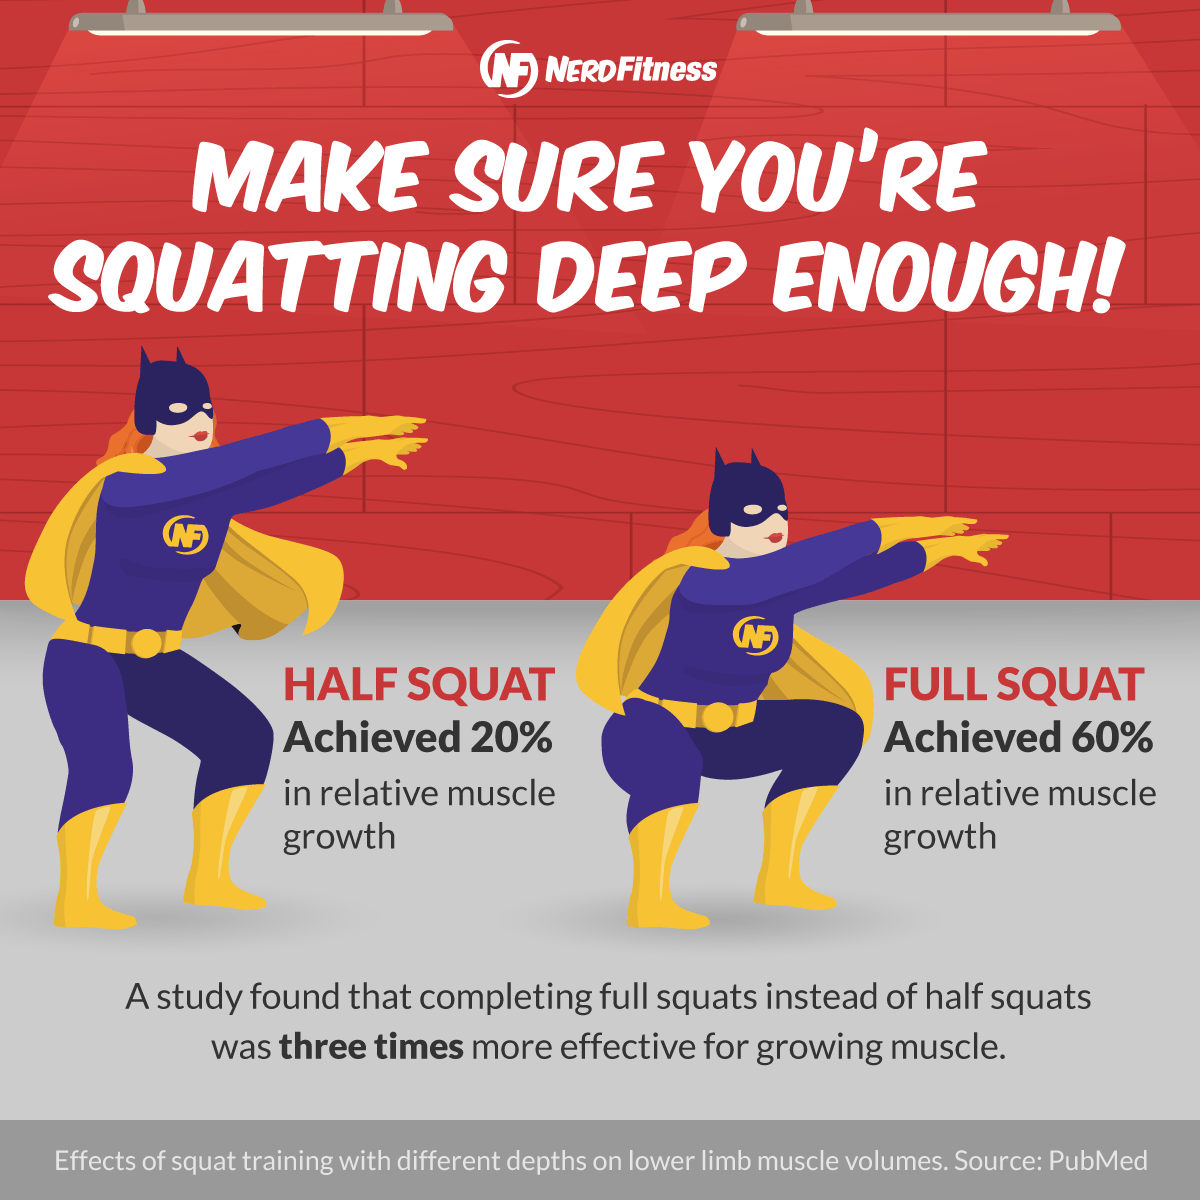 This infographic shows that a full squat will achieve three times the muscle growth as a half squat.